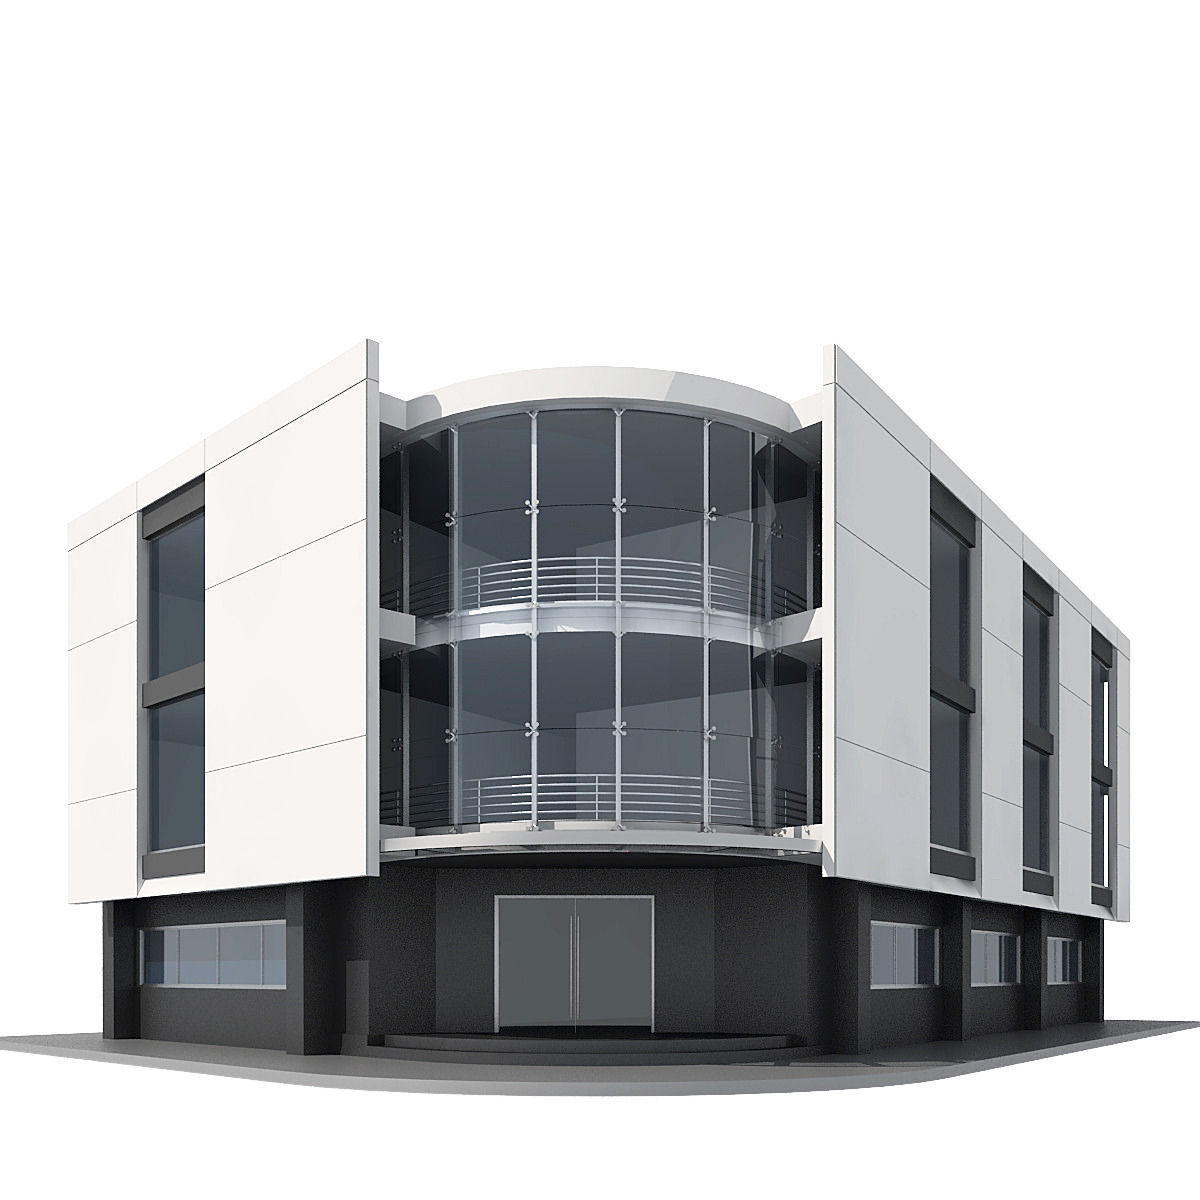 Corner building 3d model max obj 3ds 3d house building